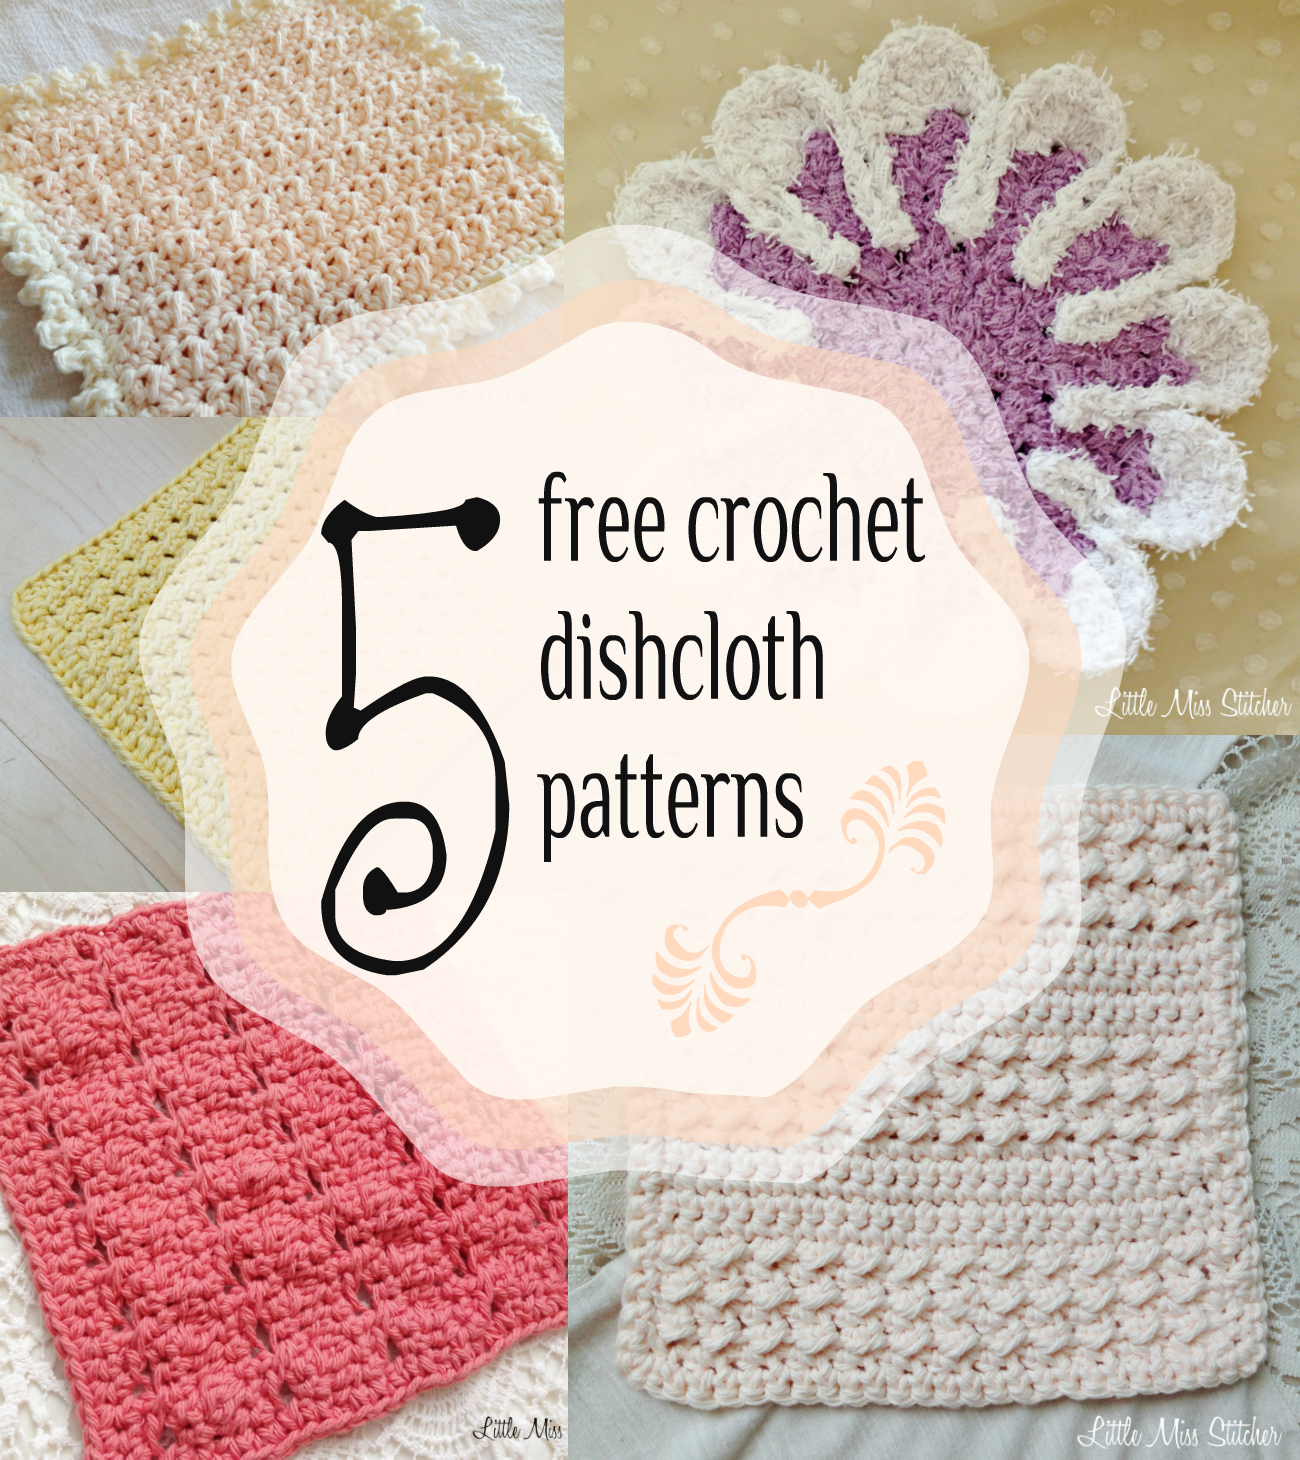 Little Miss Stitcher: 5 Free Crochet Dishcloth Patterns | Dishcloth ...